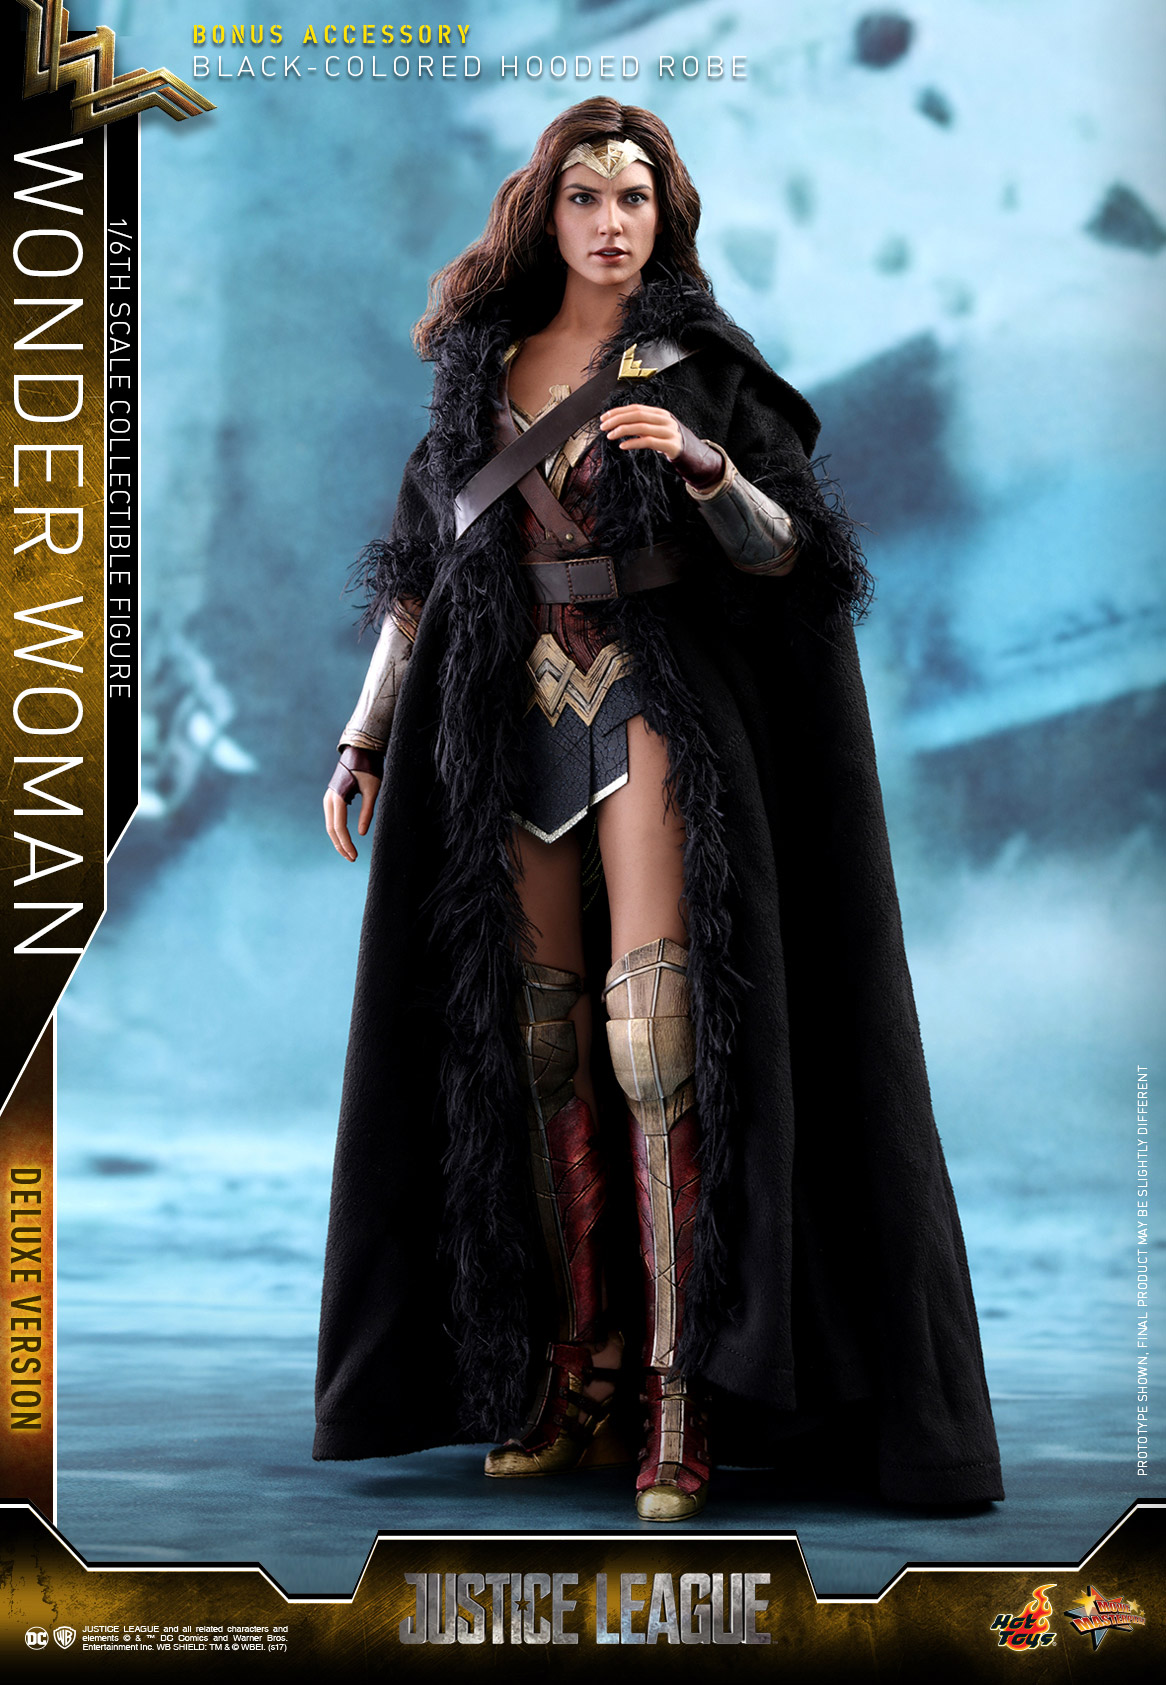 Hot-Toys-Justice-League-Wonder-Woman-collectible-figure-Deluxe_PR-4.jpg